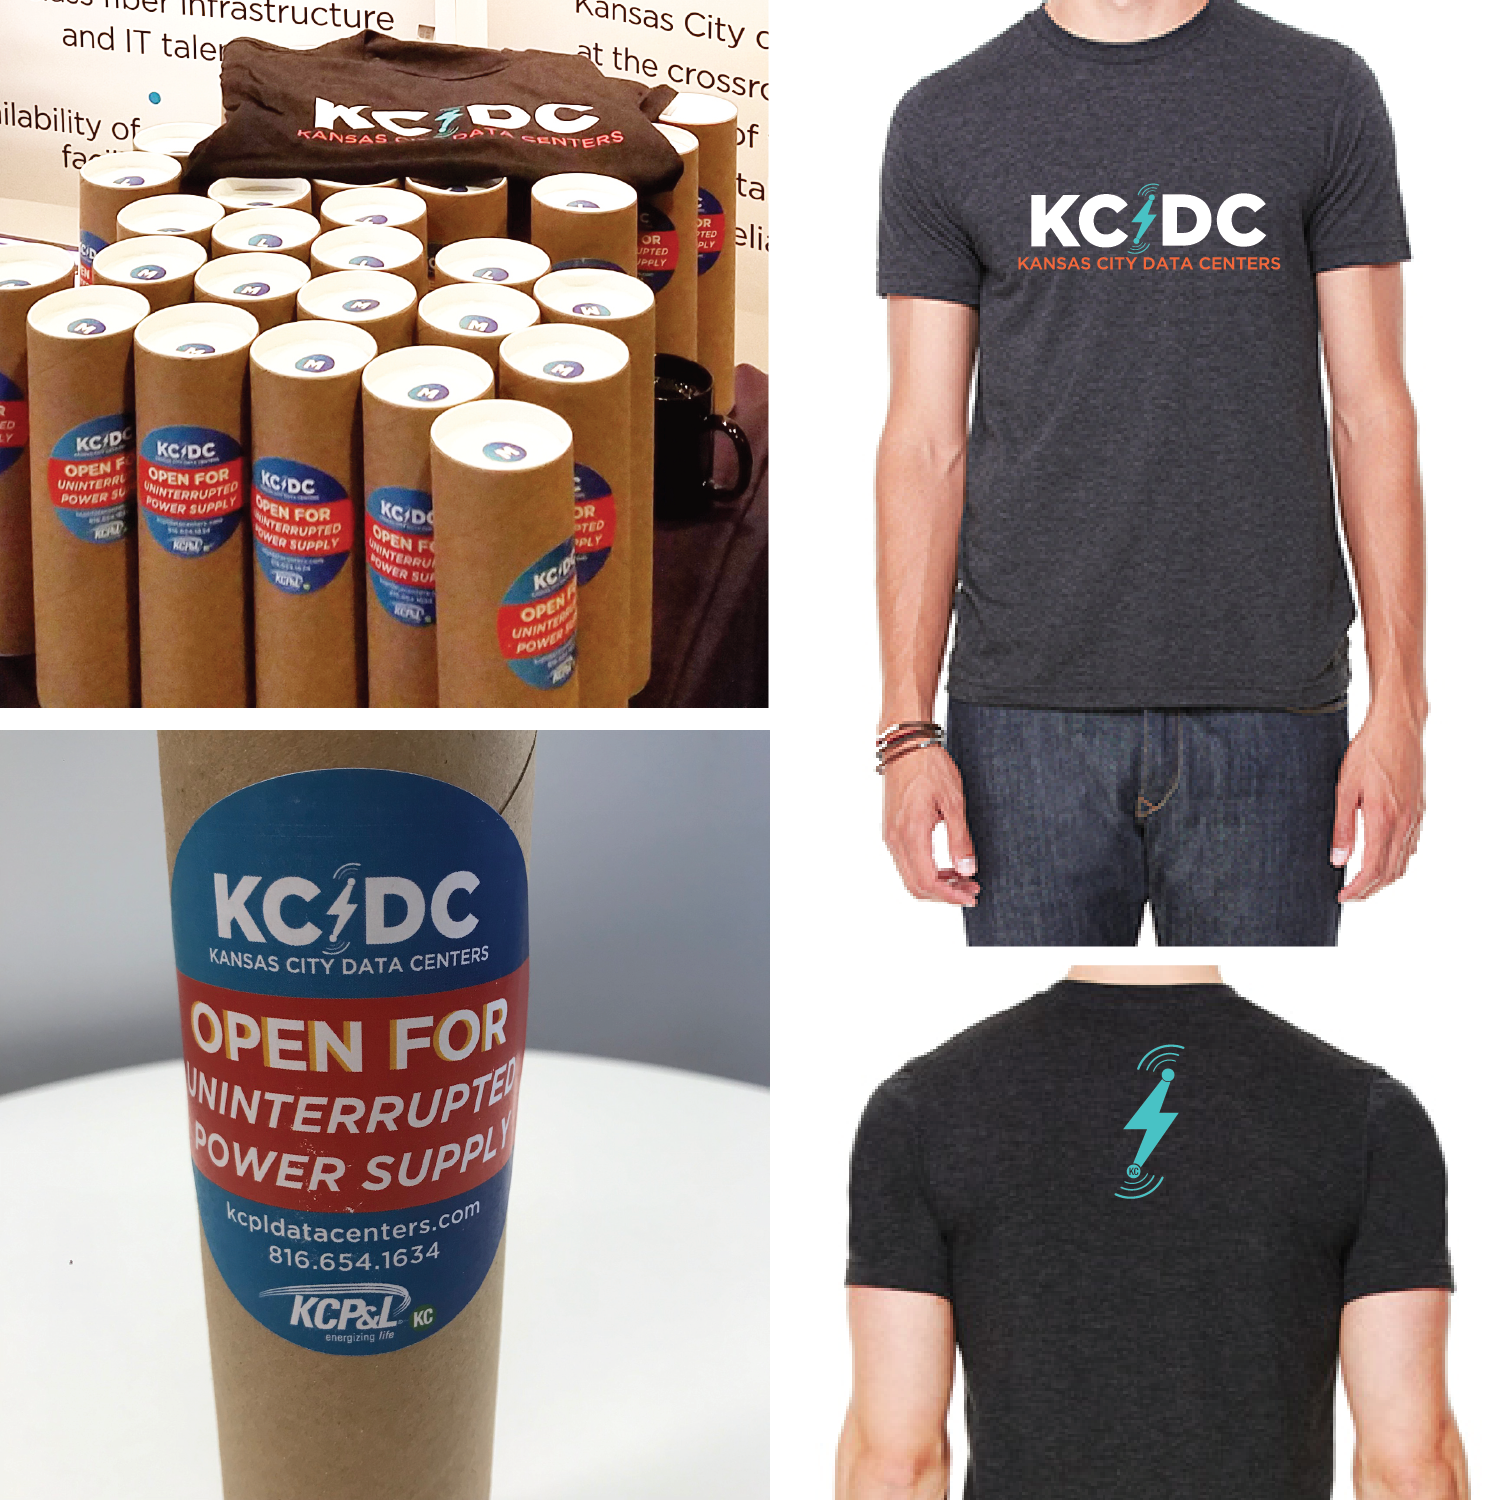 candid.Branded.KCPLDC.shirts.png